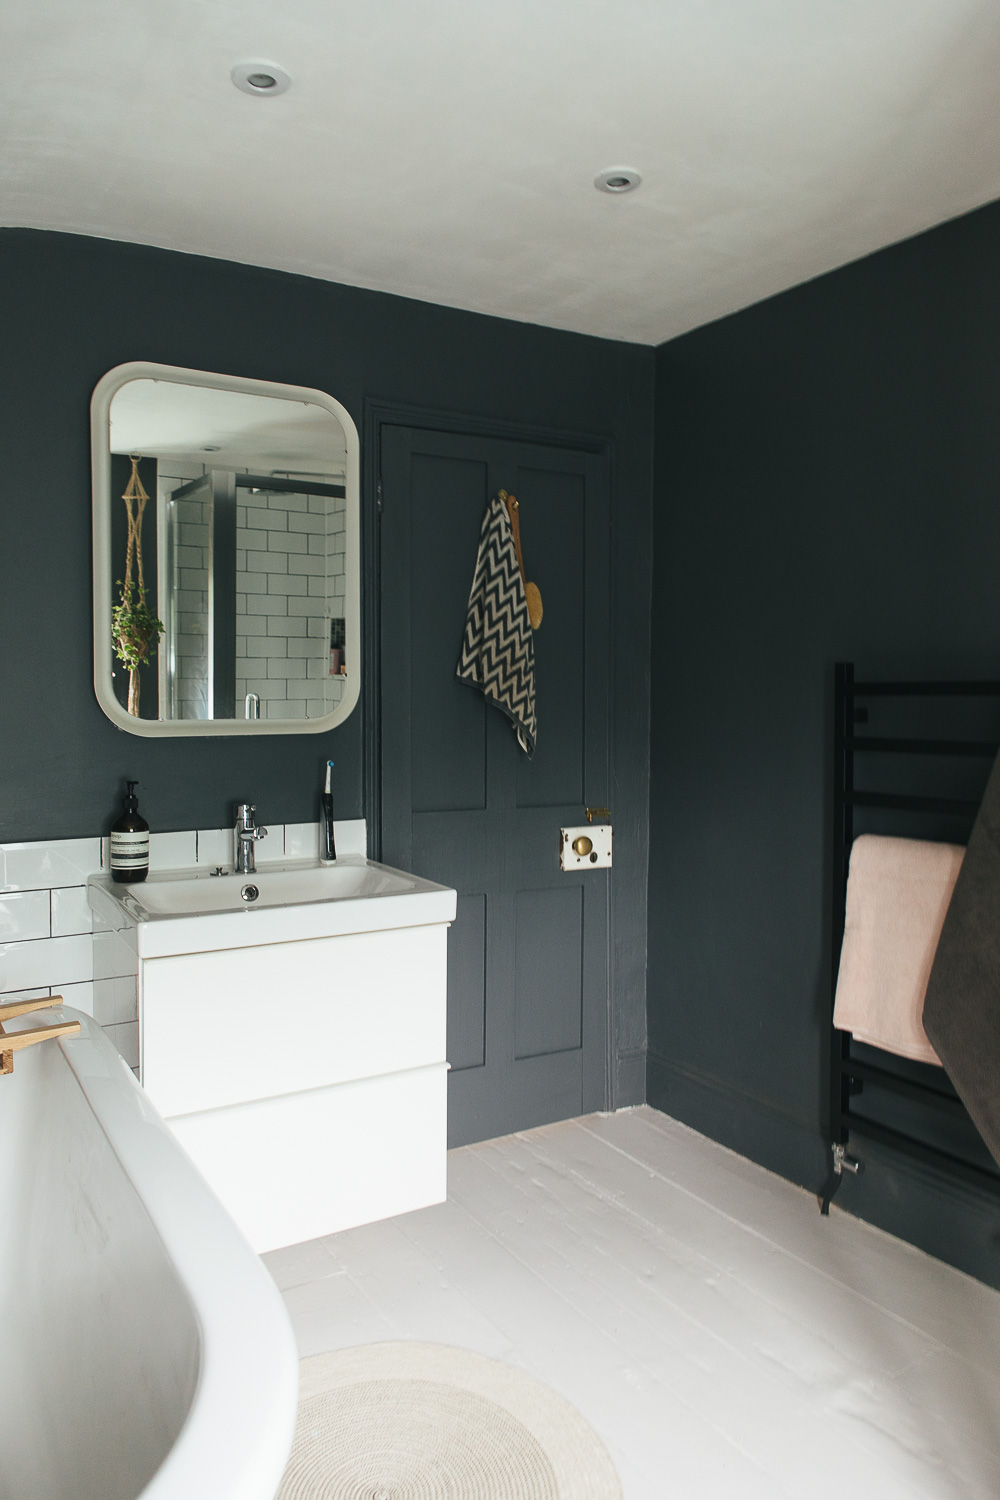 Choosing a light or dark bathroom colour scheme for a